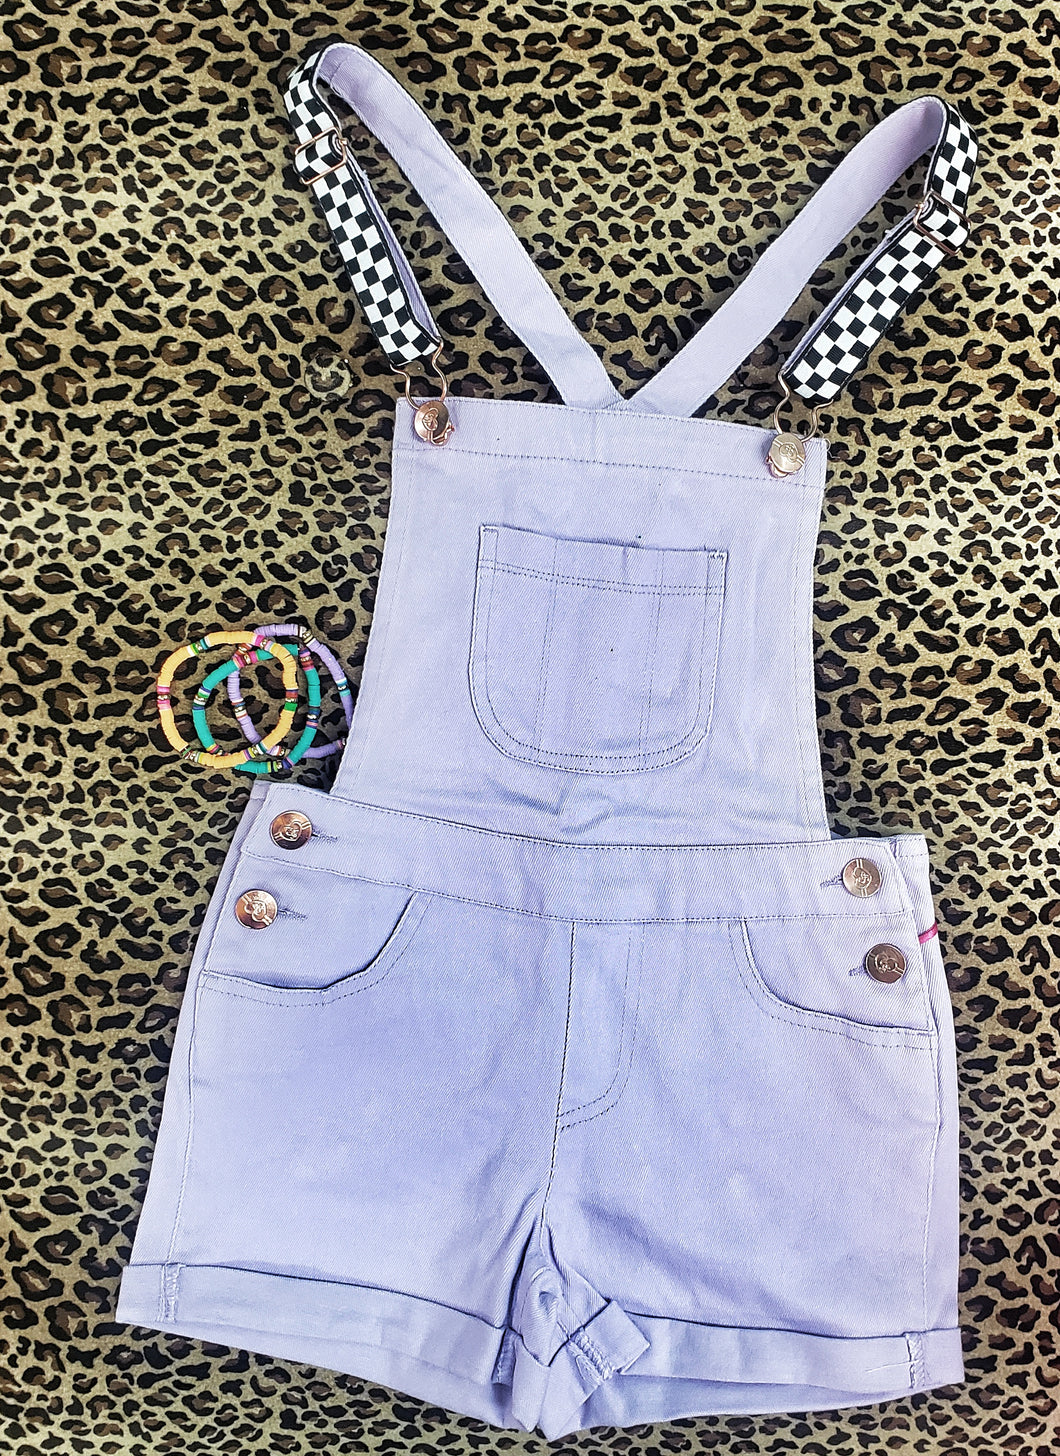 Racing shortalls